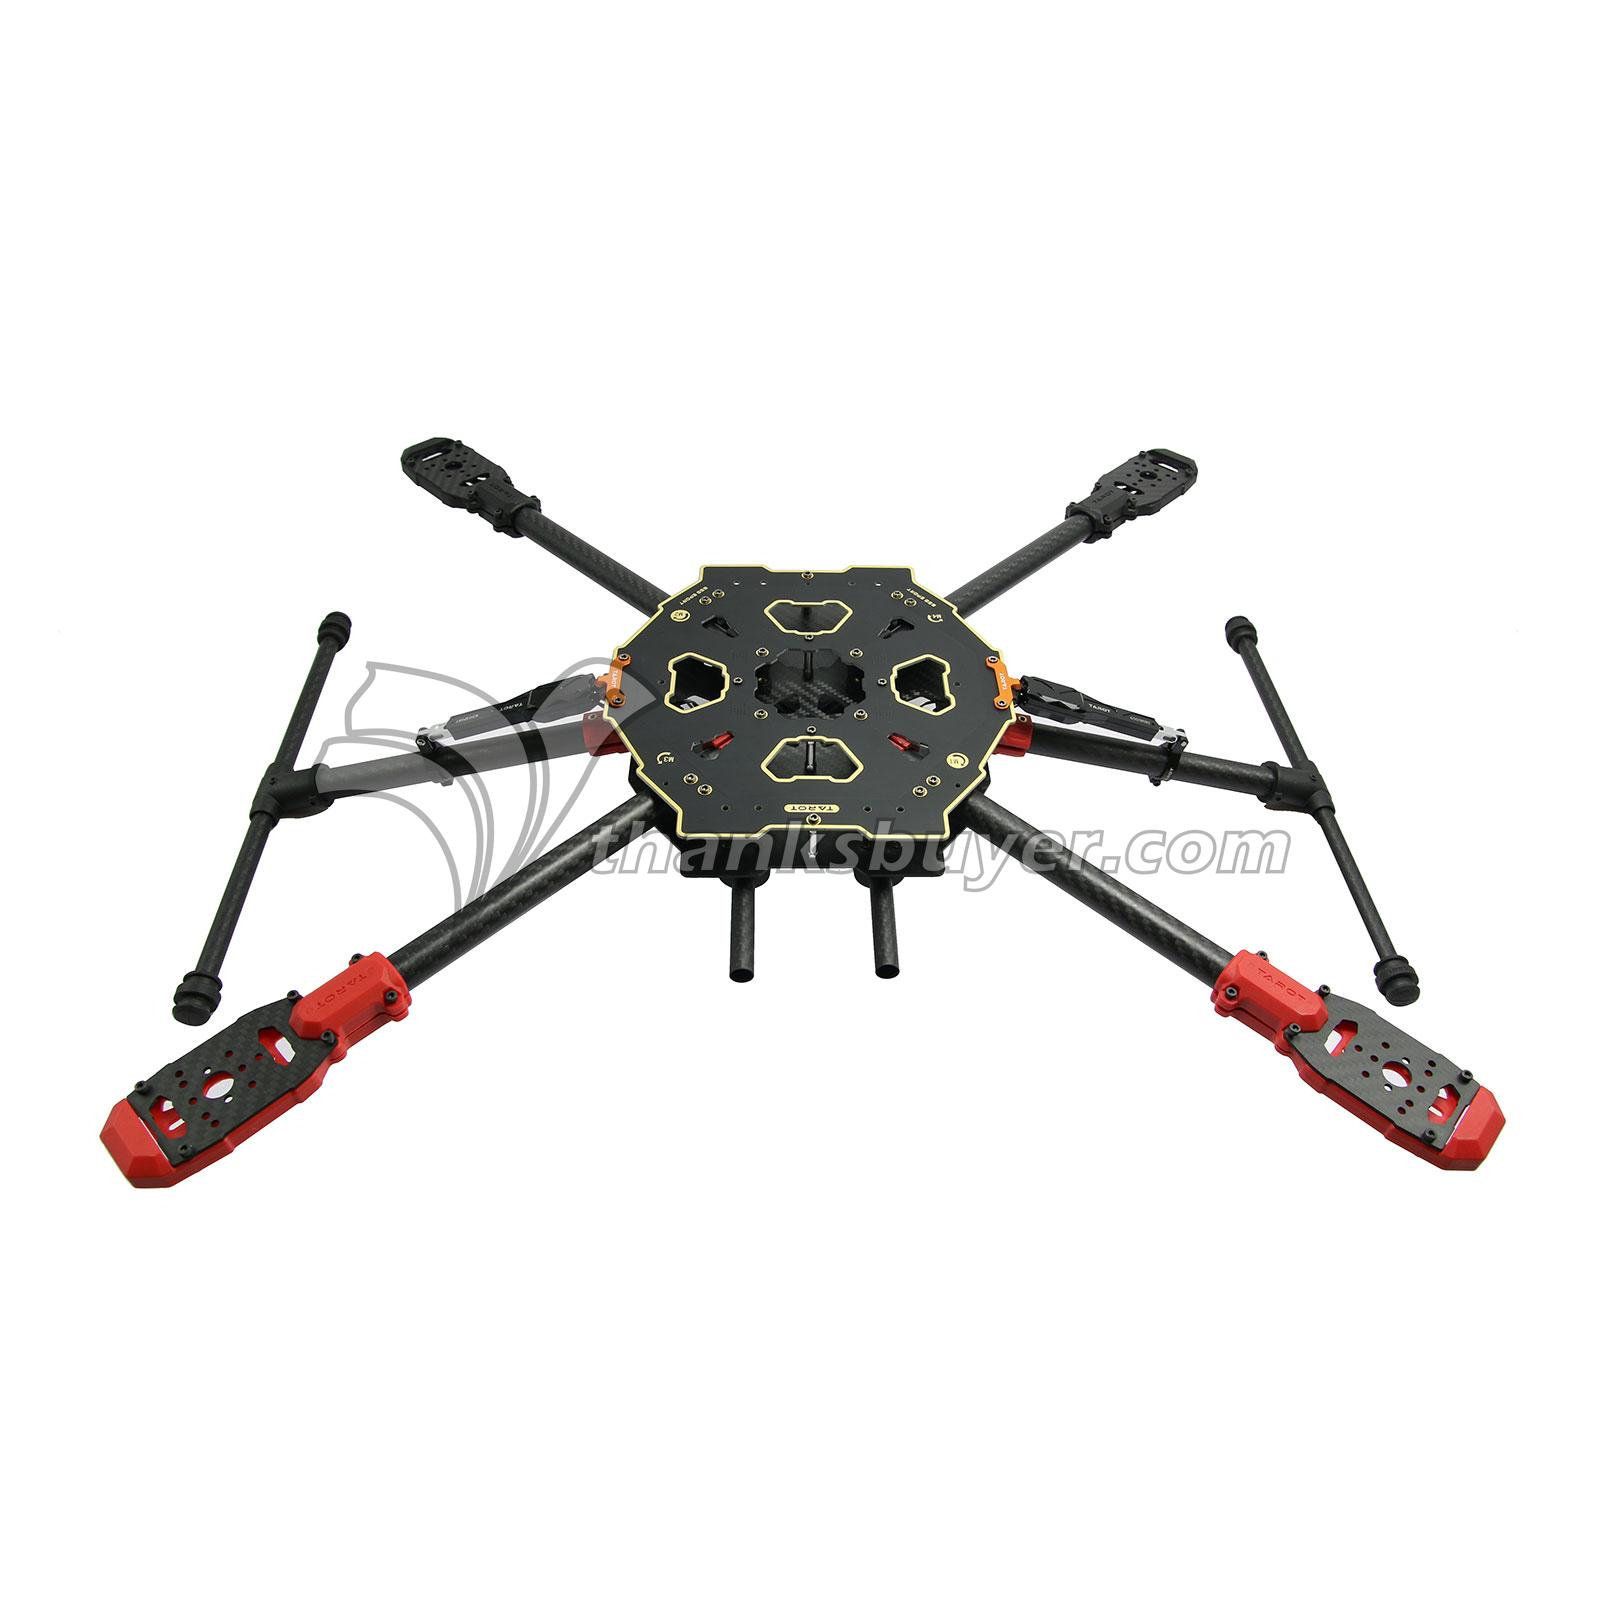 Tarot 650 Sport Quadcopter TL65S01 with SunnySky X4108S